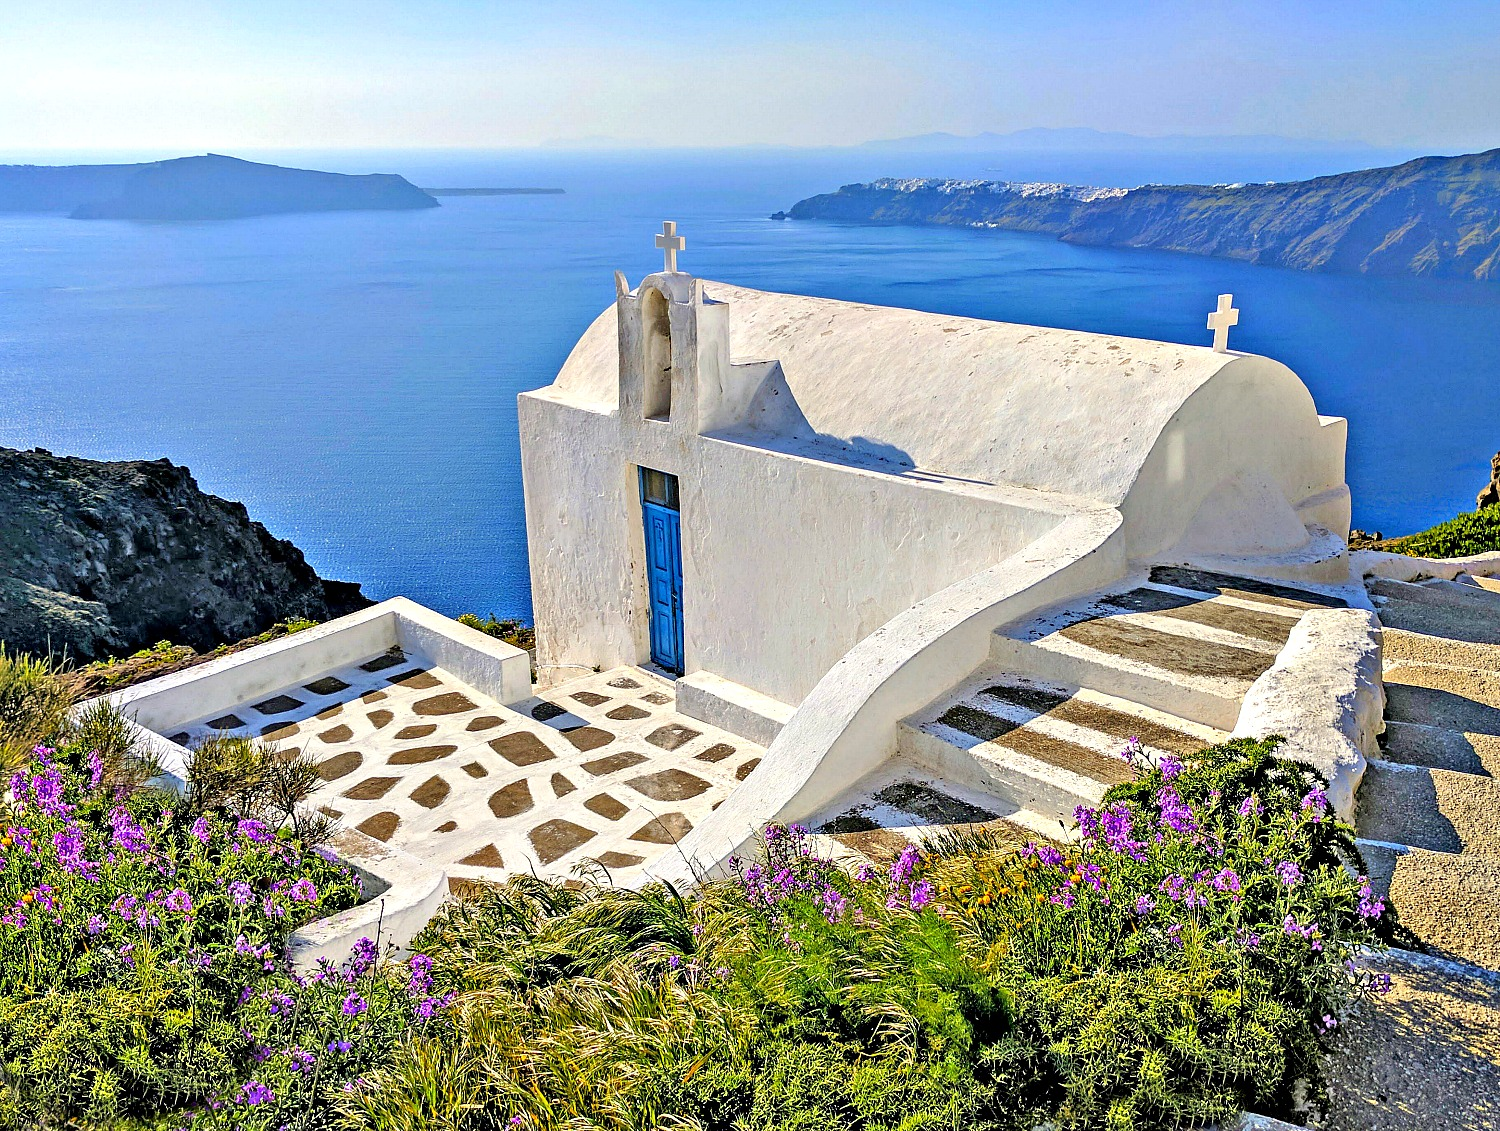 Entering hiking trail to Skaros Rock - sea, church and flowers.